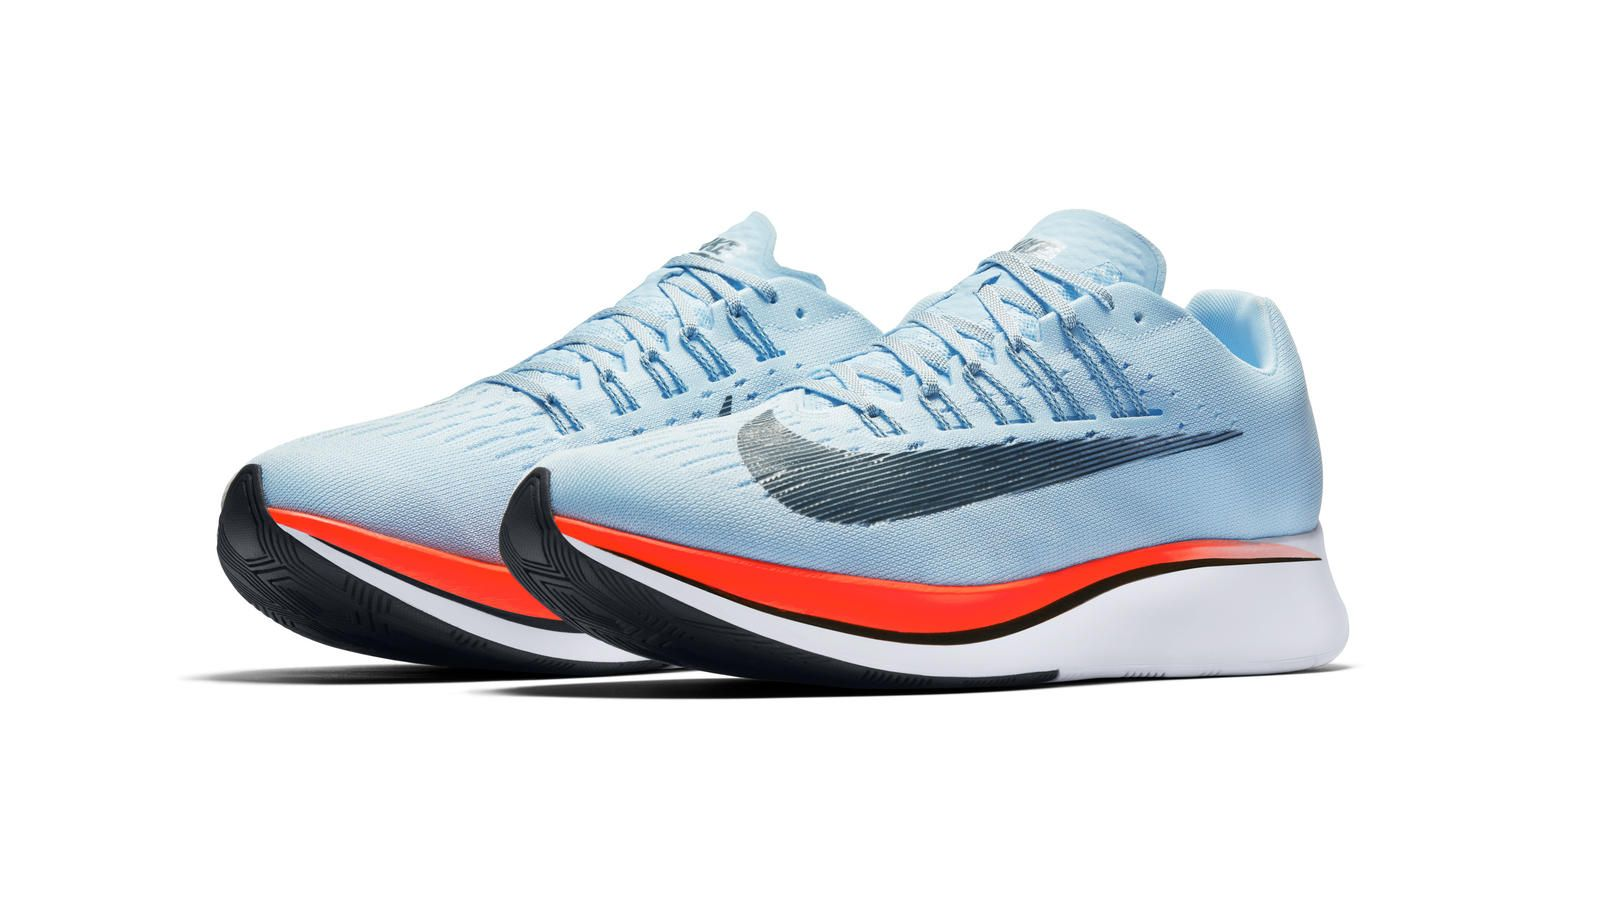 Nike News - Nike Redefines Look and Feel of Fast Running